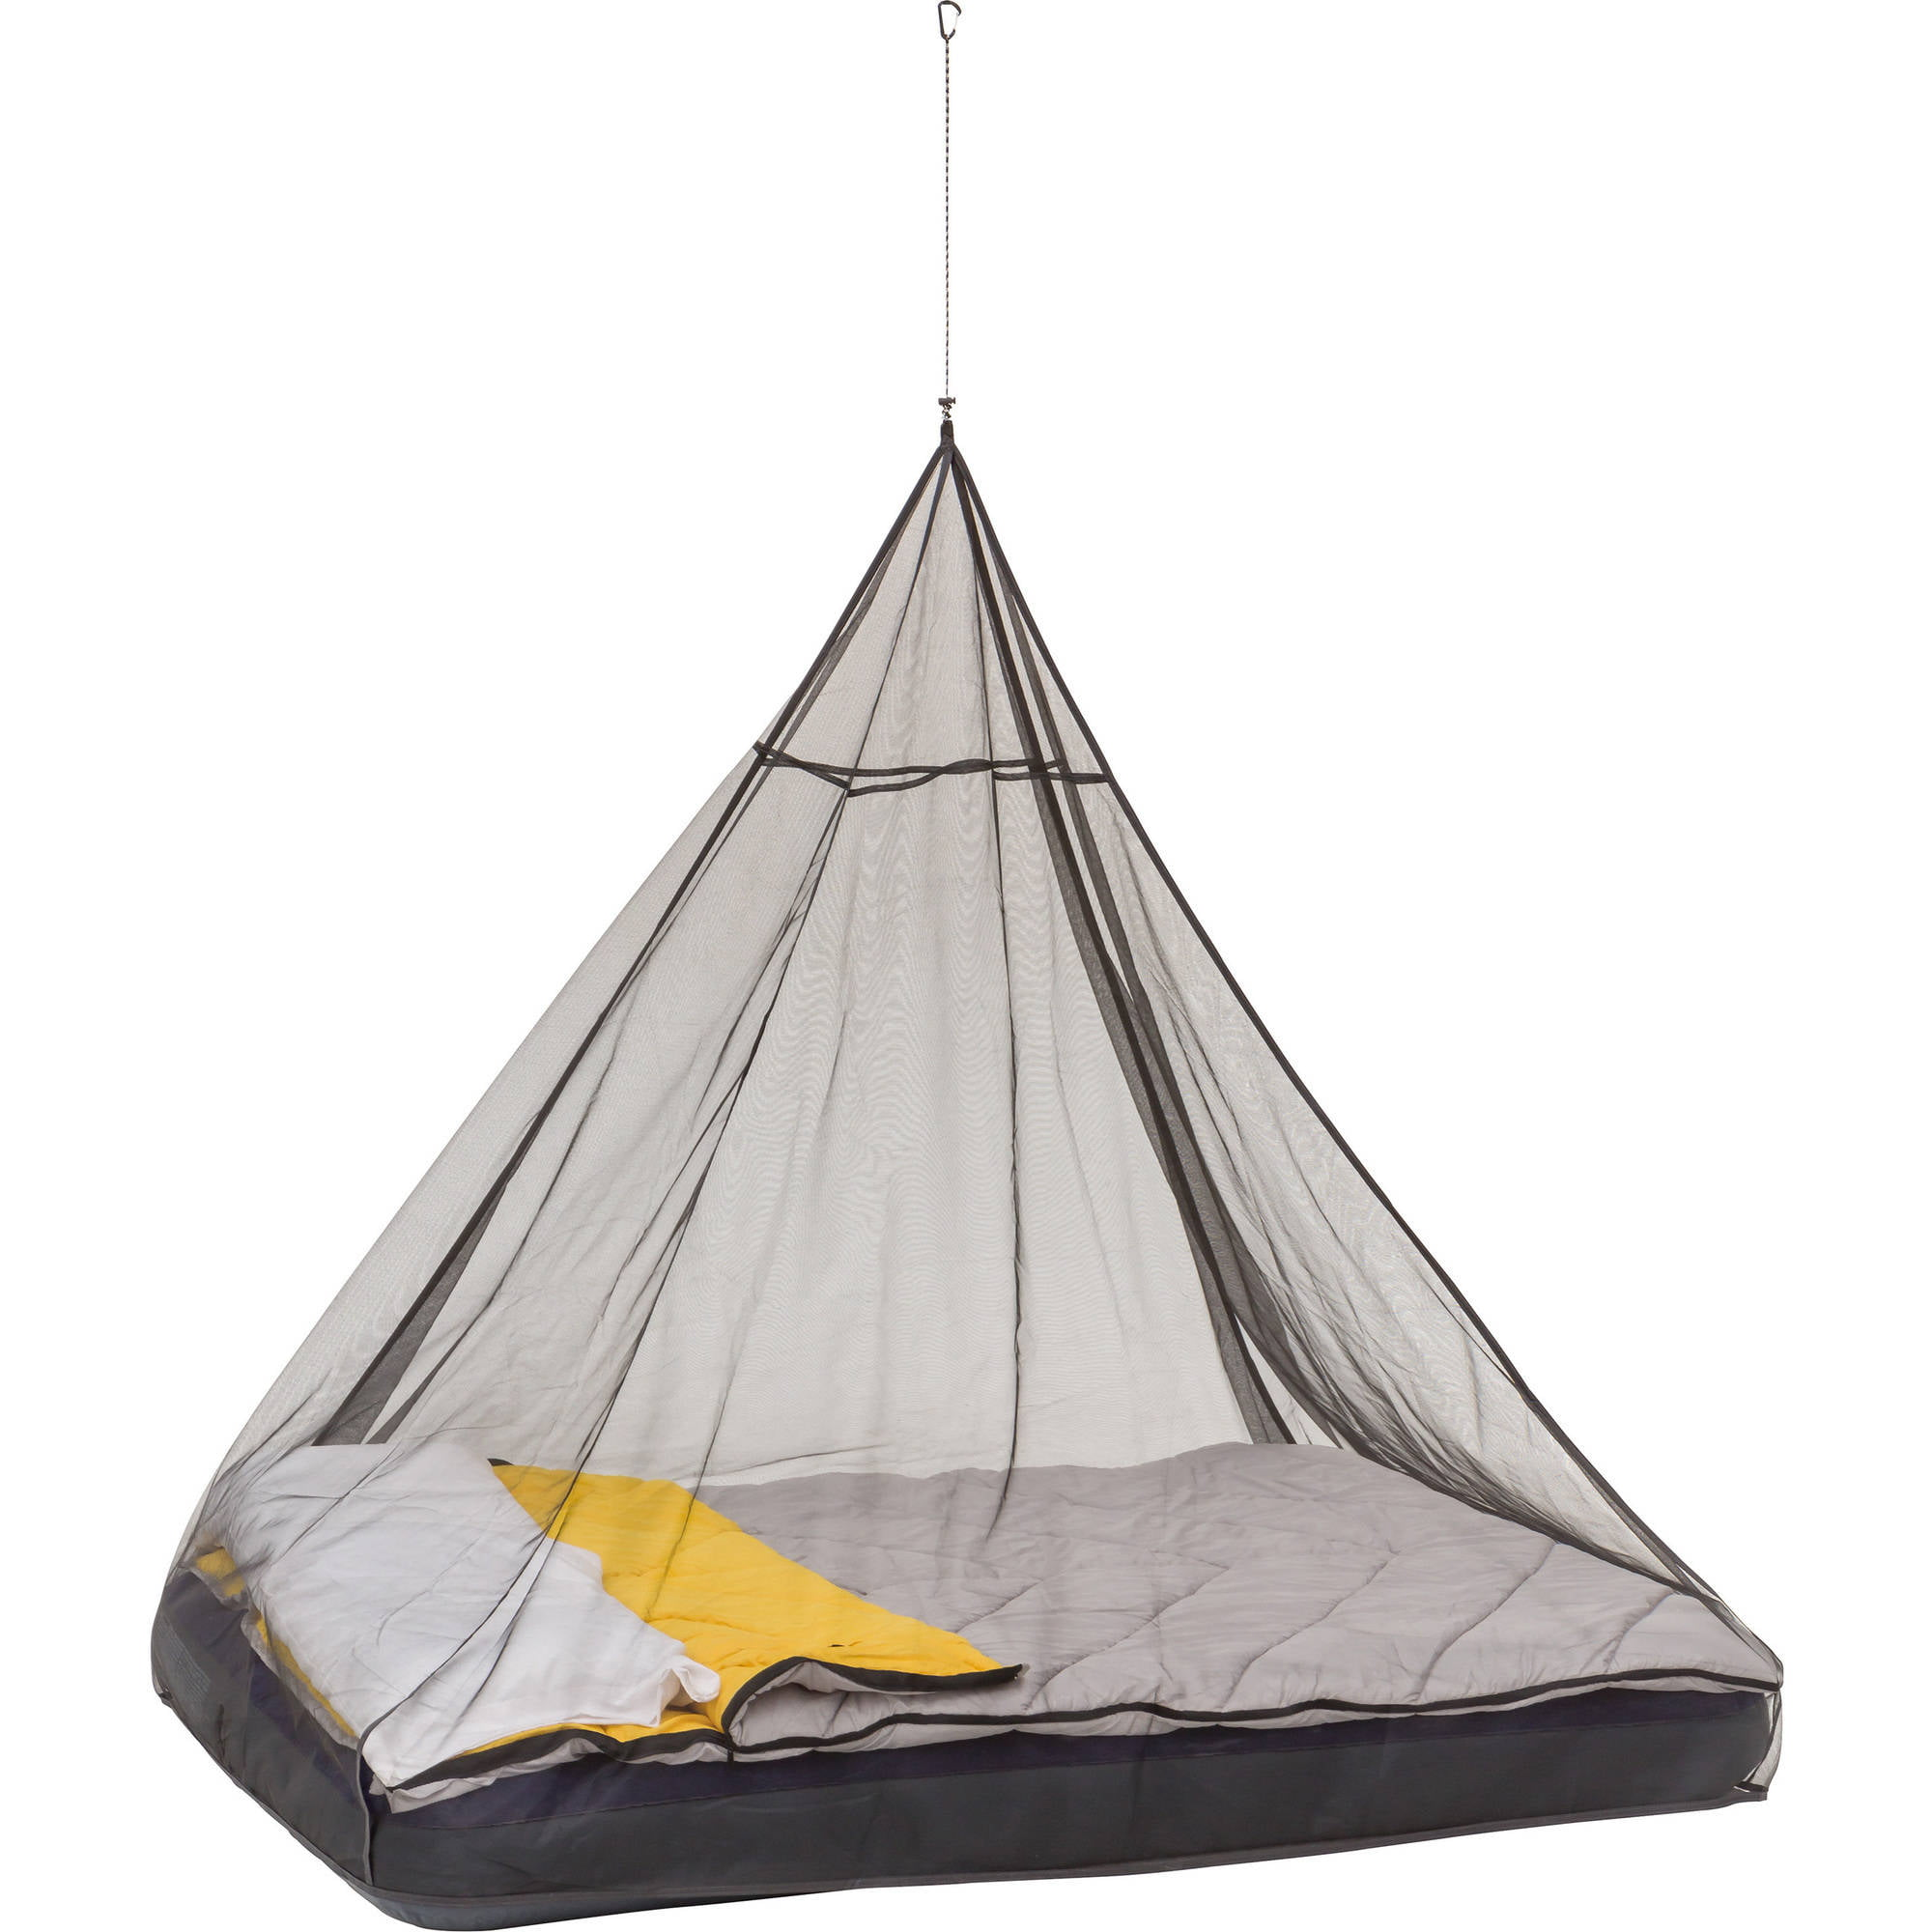 Ozark Trail Mosquito Net, Queen by Bohemian Travel Gear Limited